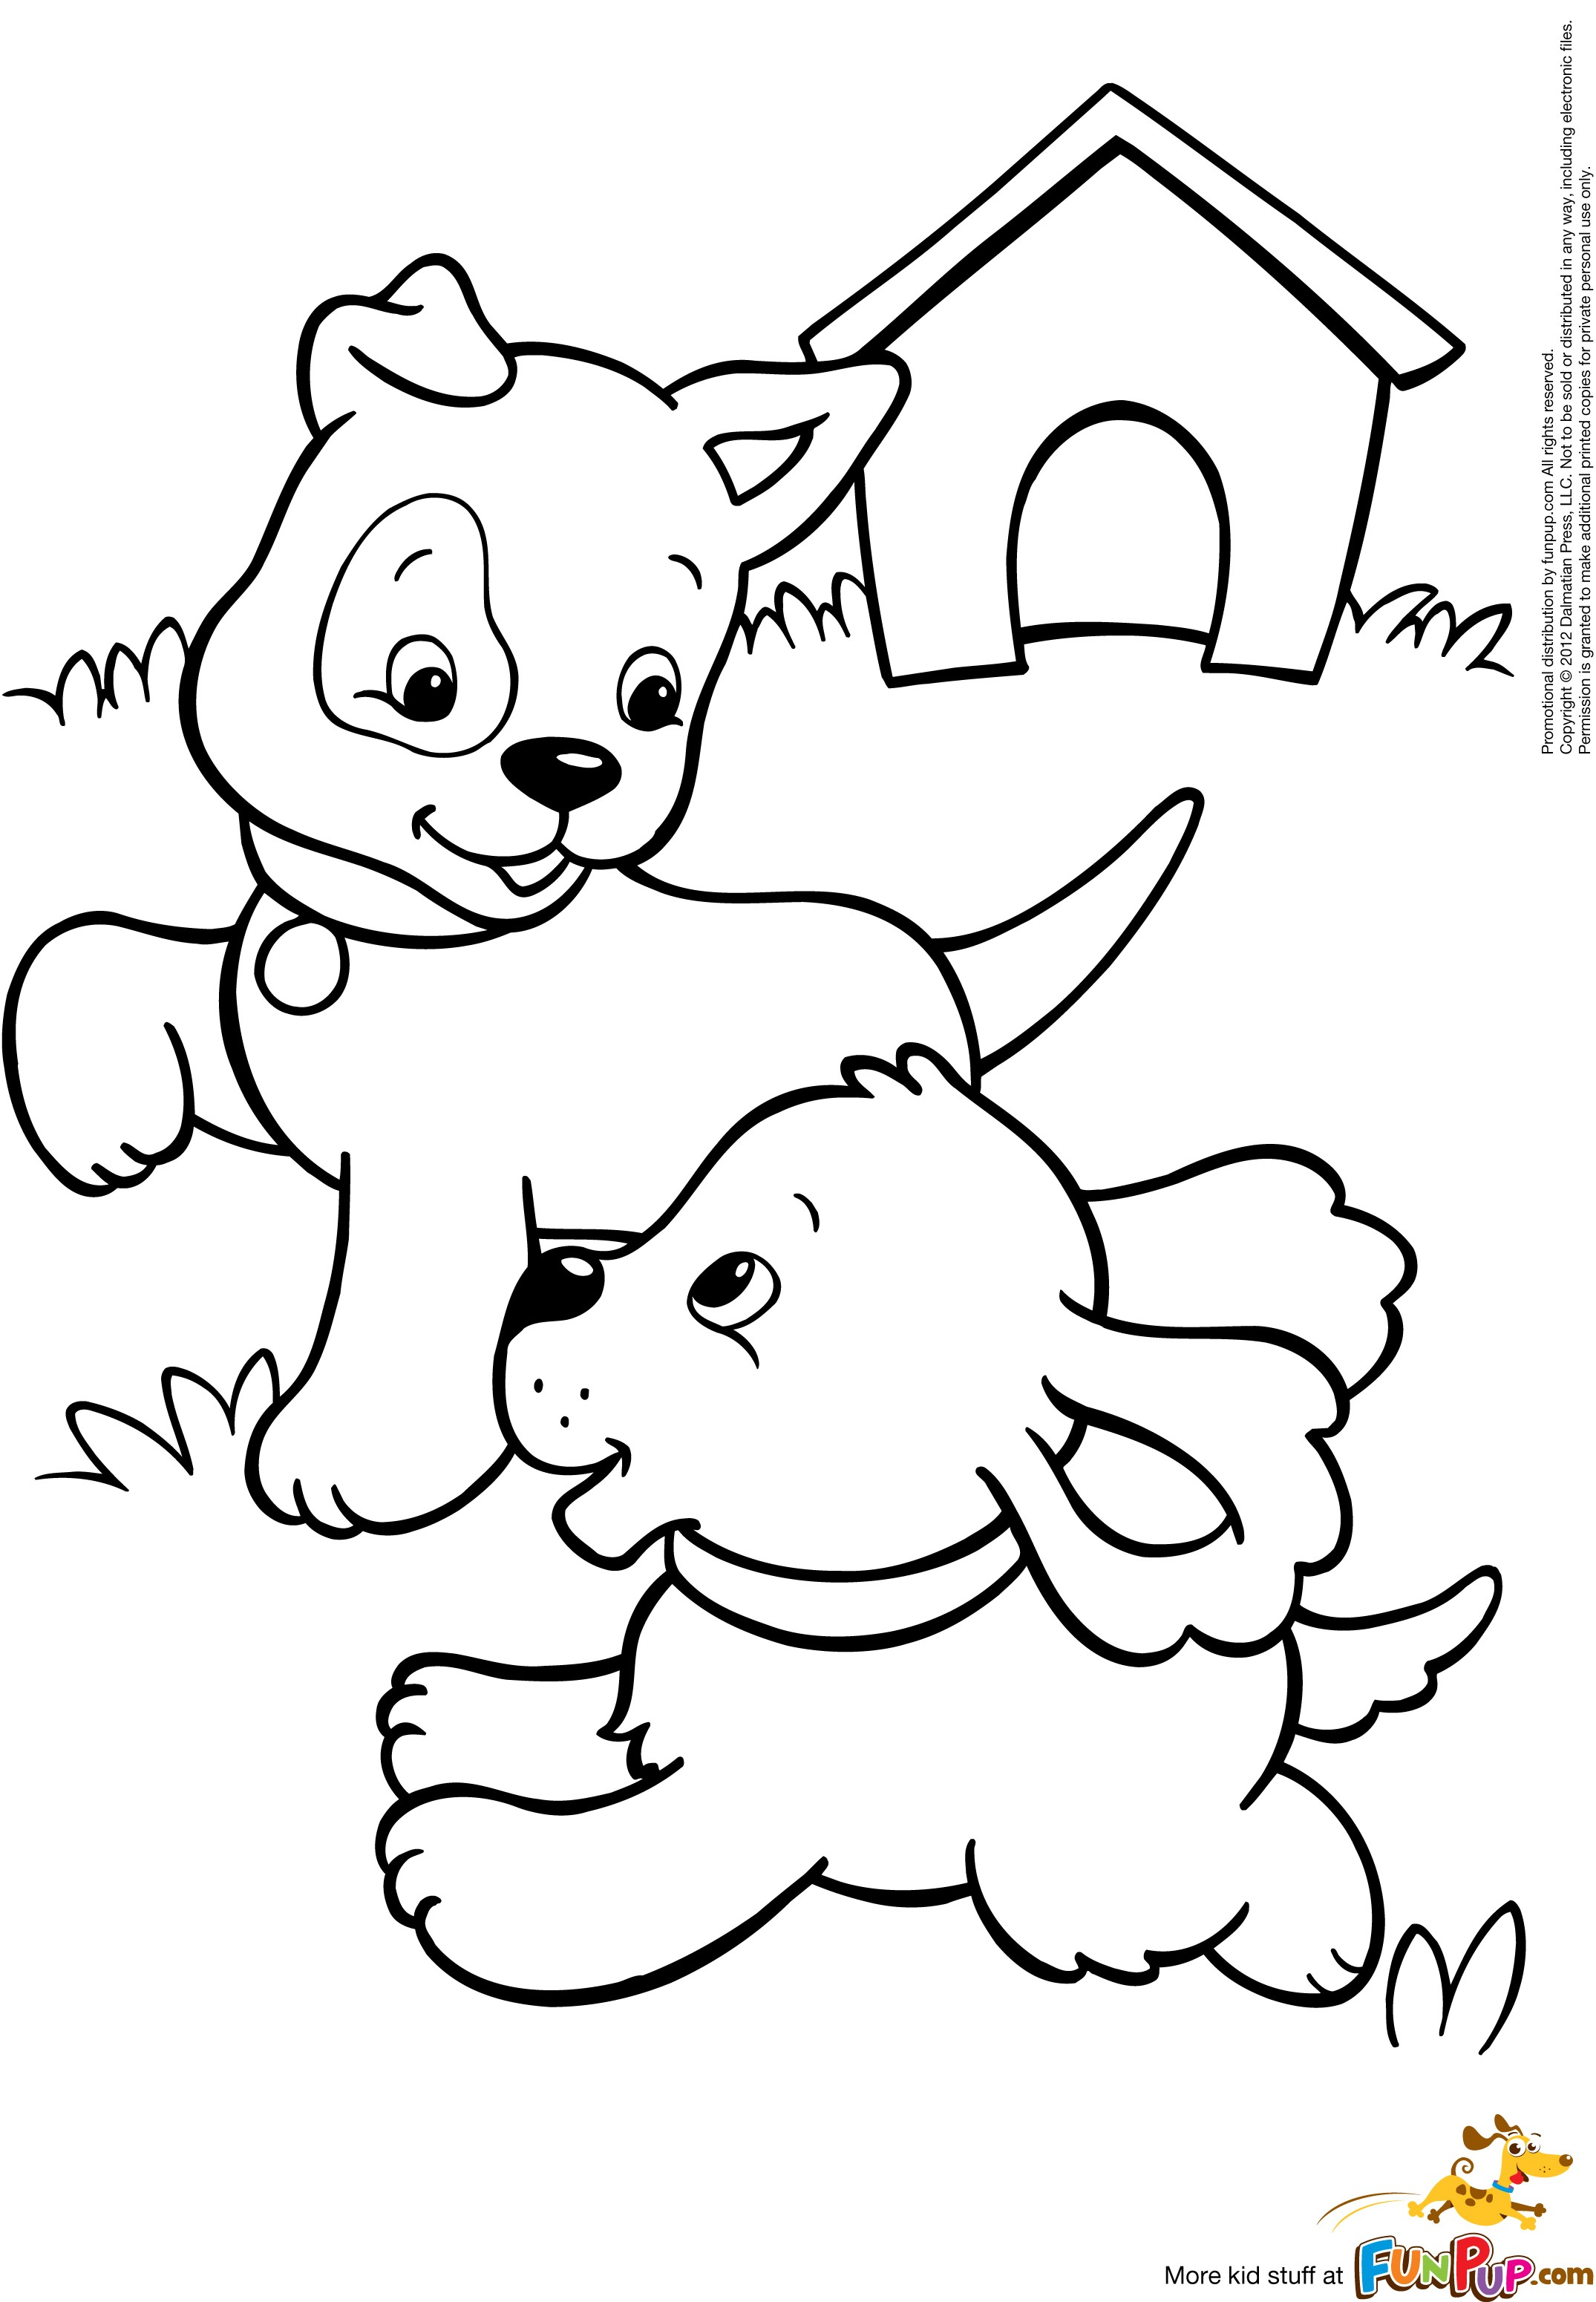 dogs pictures to color puppy dog pals coloring pages to download and print for free dogs pictures color to